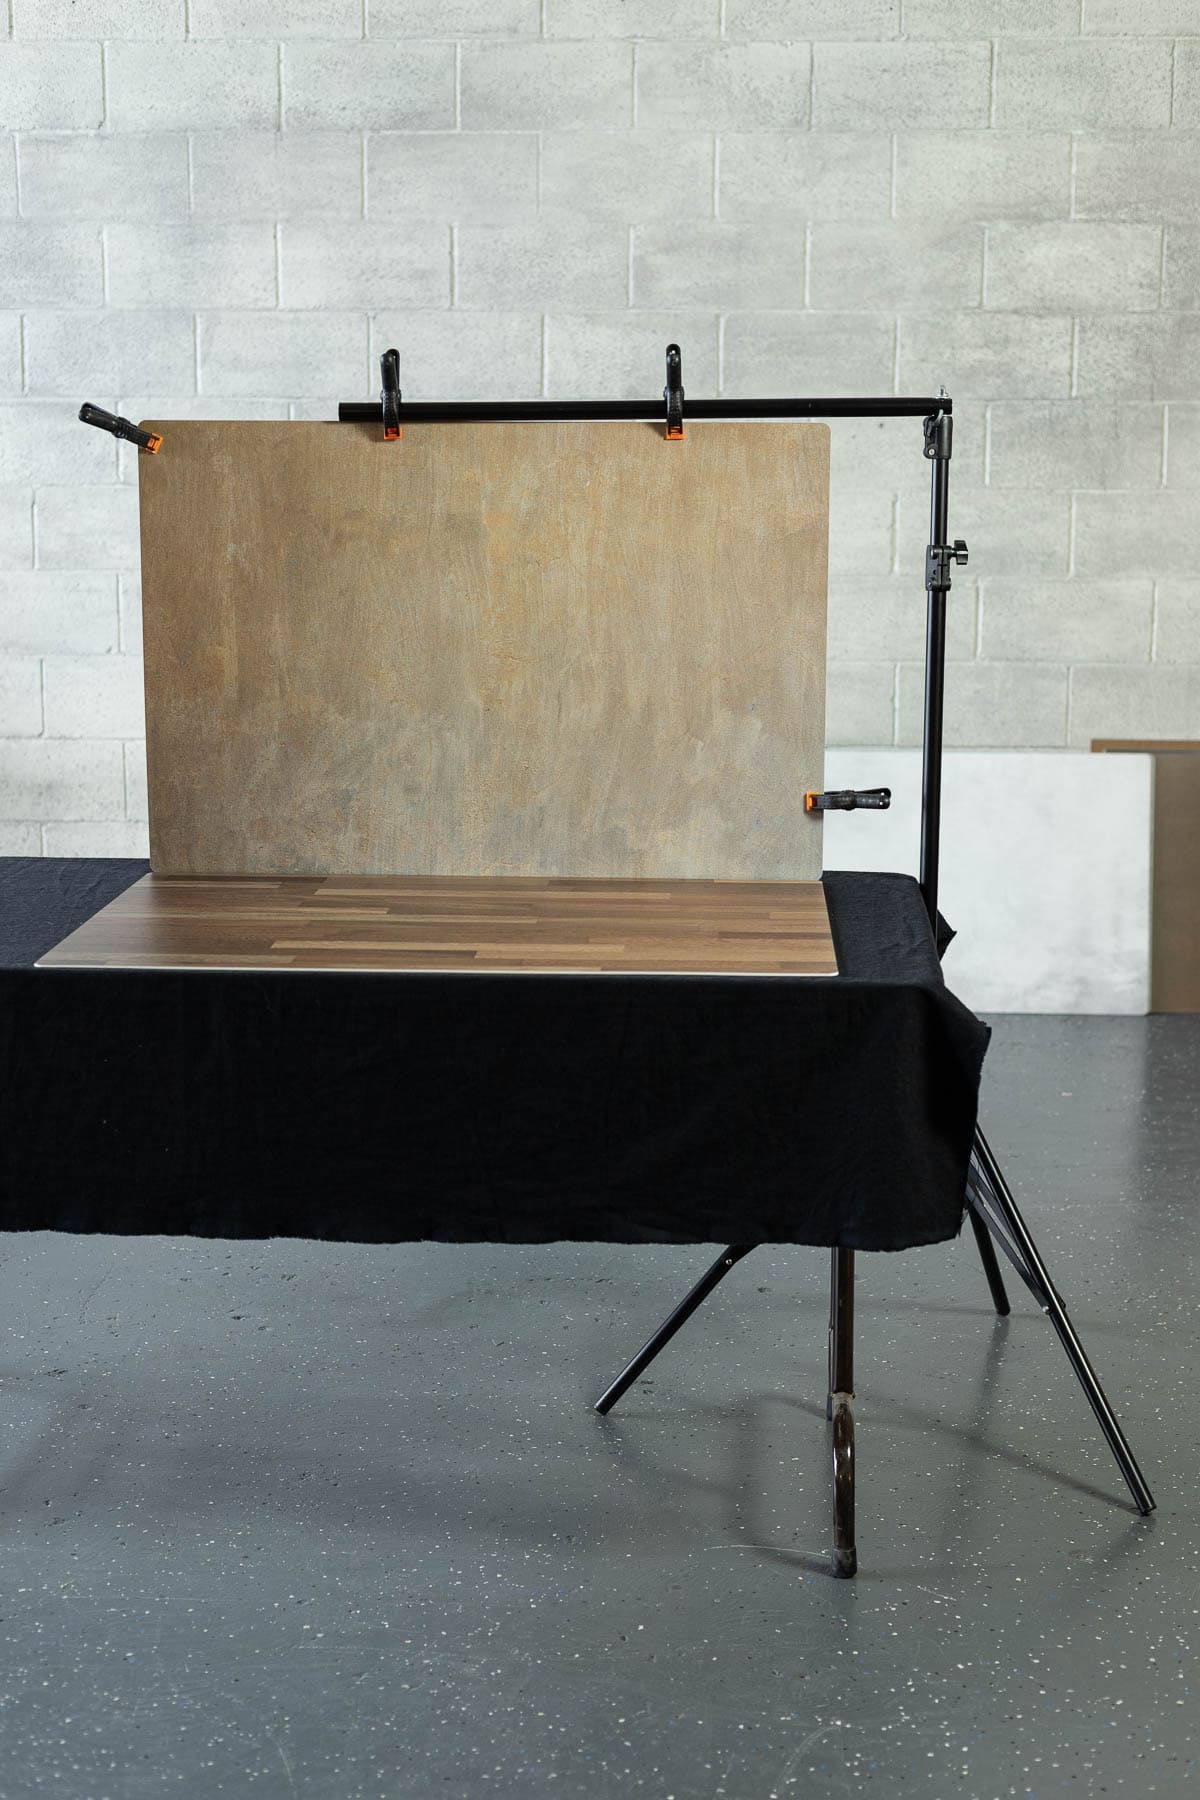 Two photo backdrops clipped to a photography stand